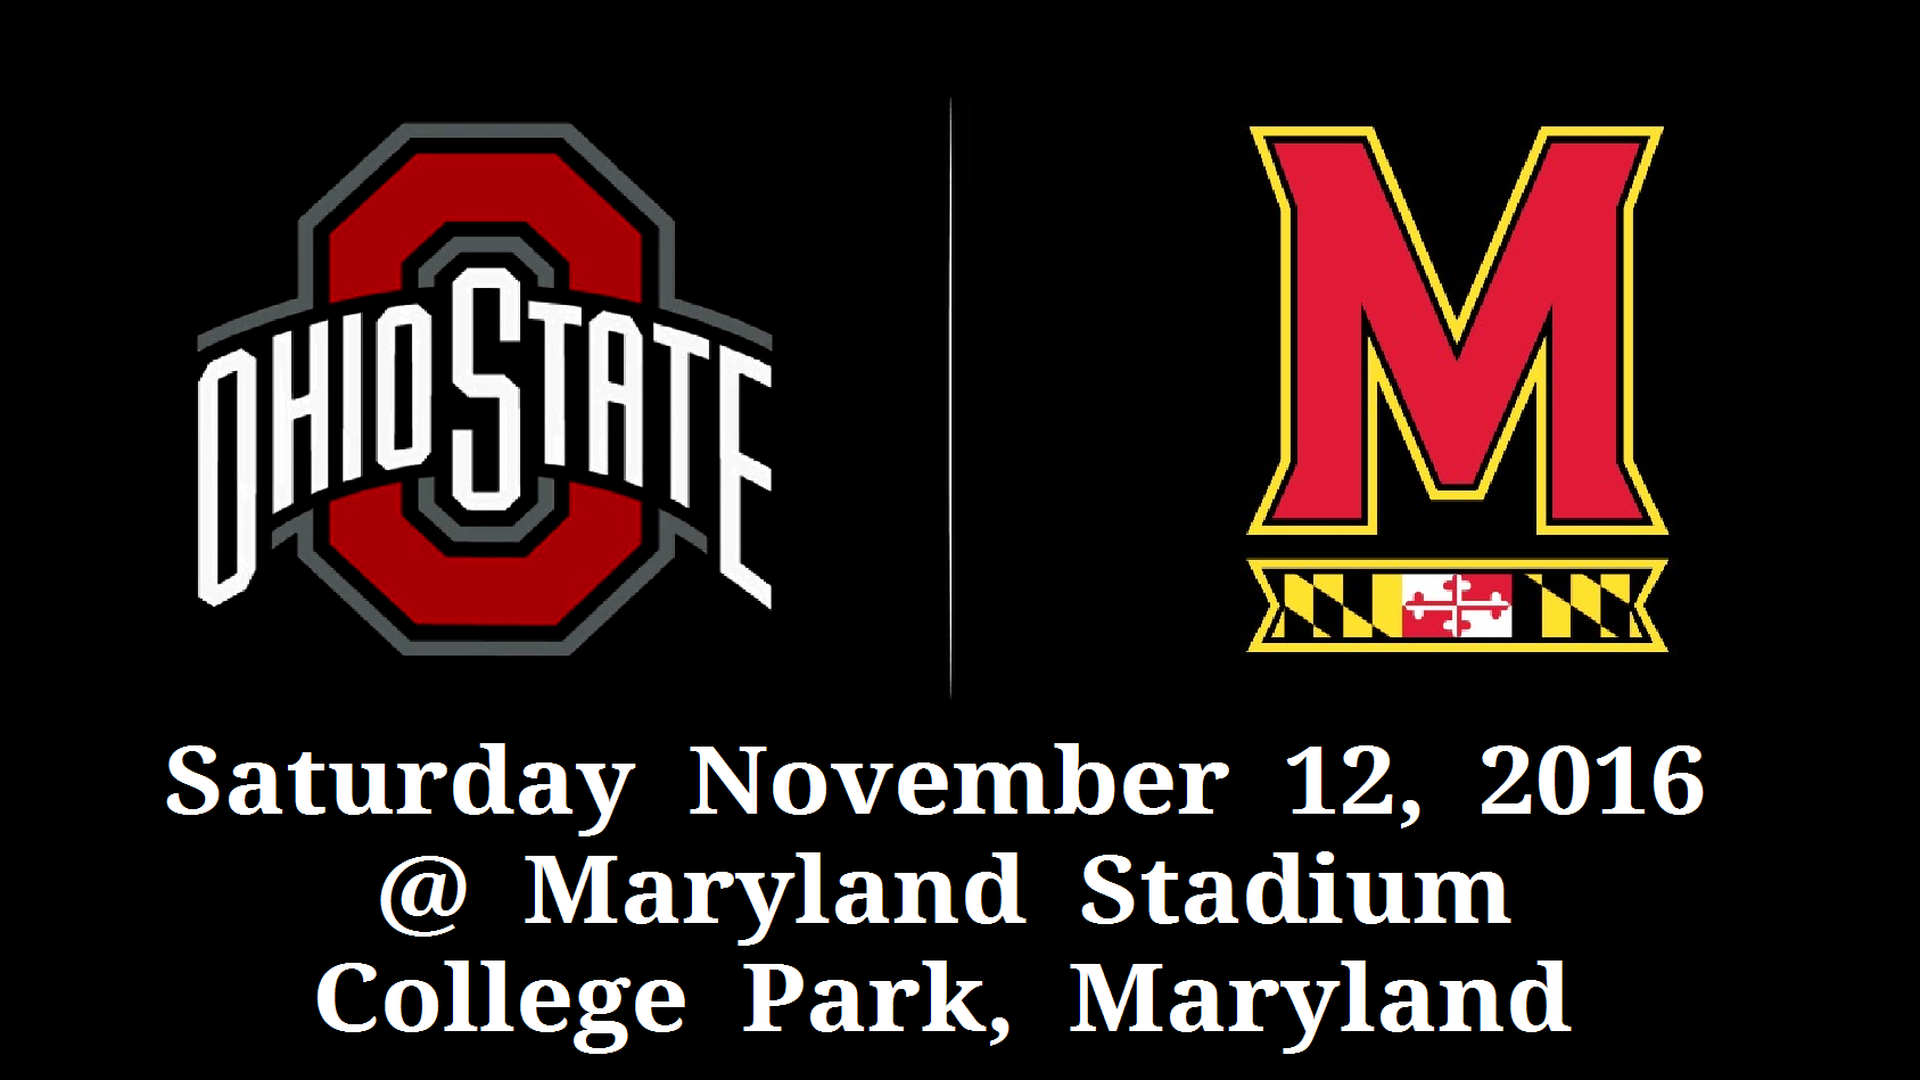 11-12-2016 GAME #10 THE VS. MARYLAND GAME POSTER.